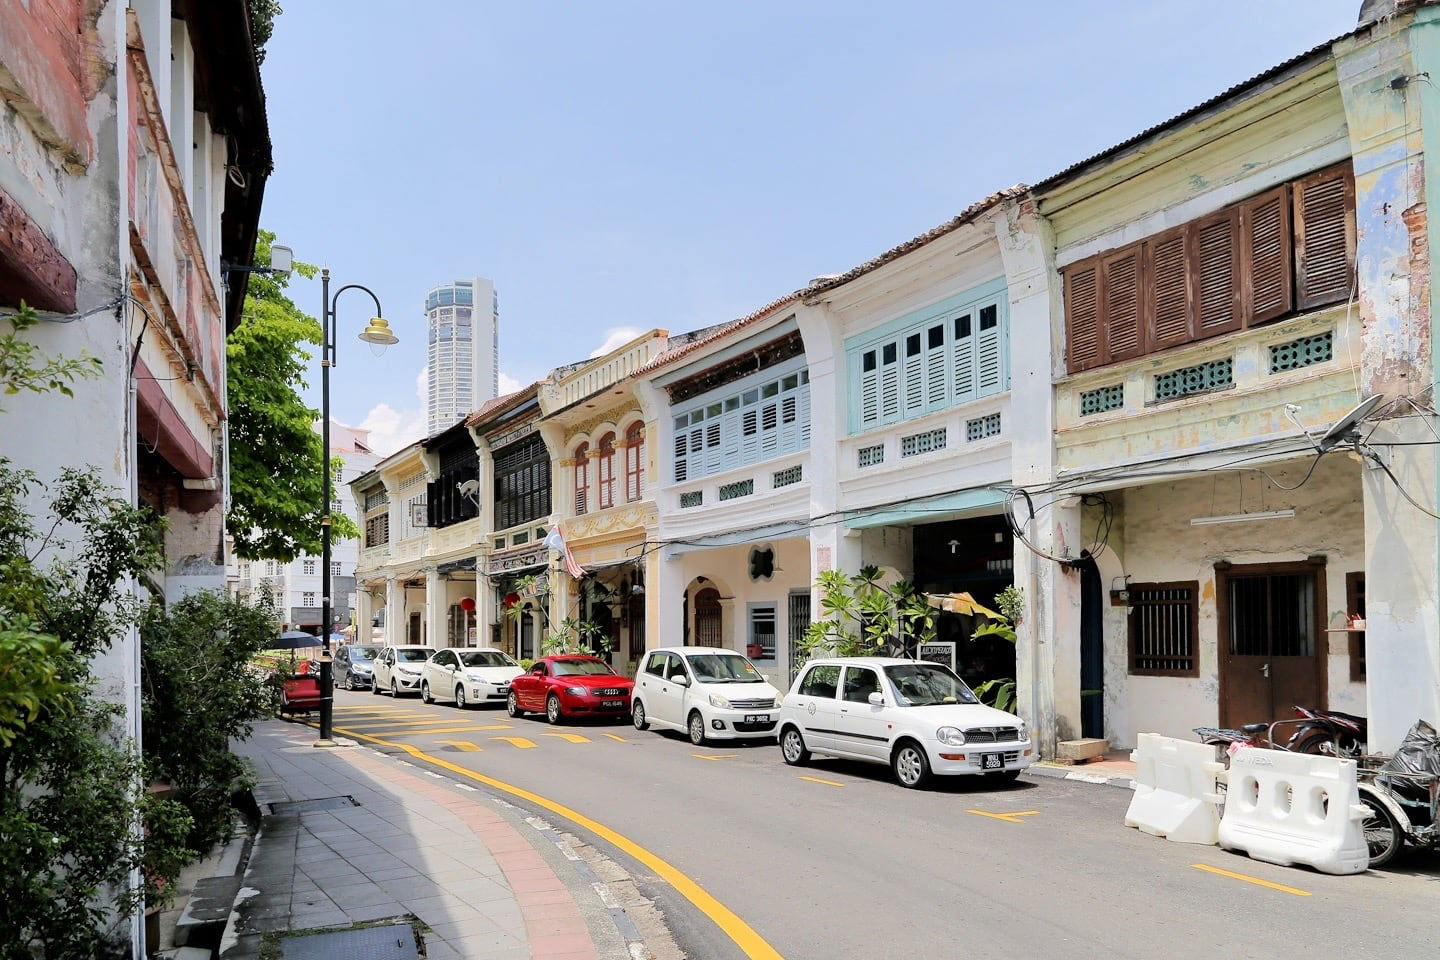 streets of George Town Penang